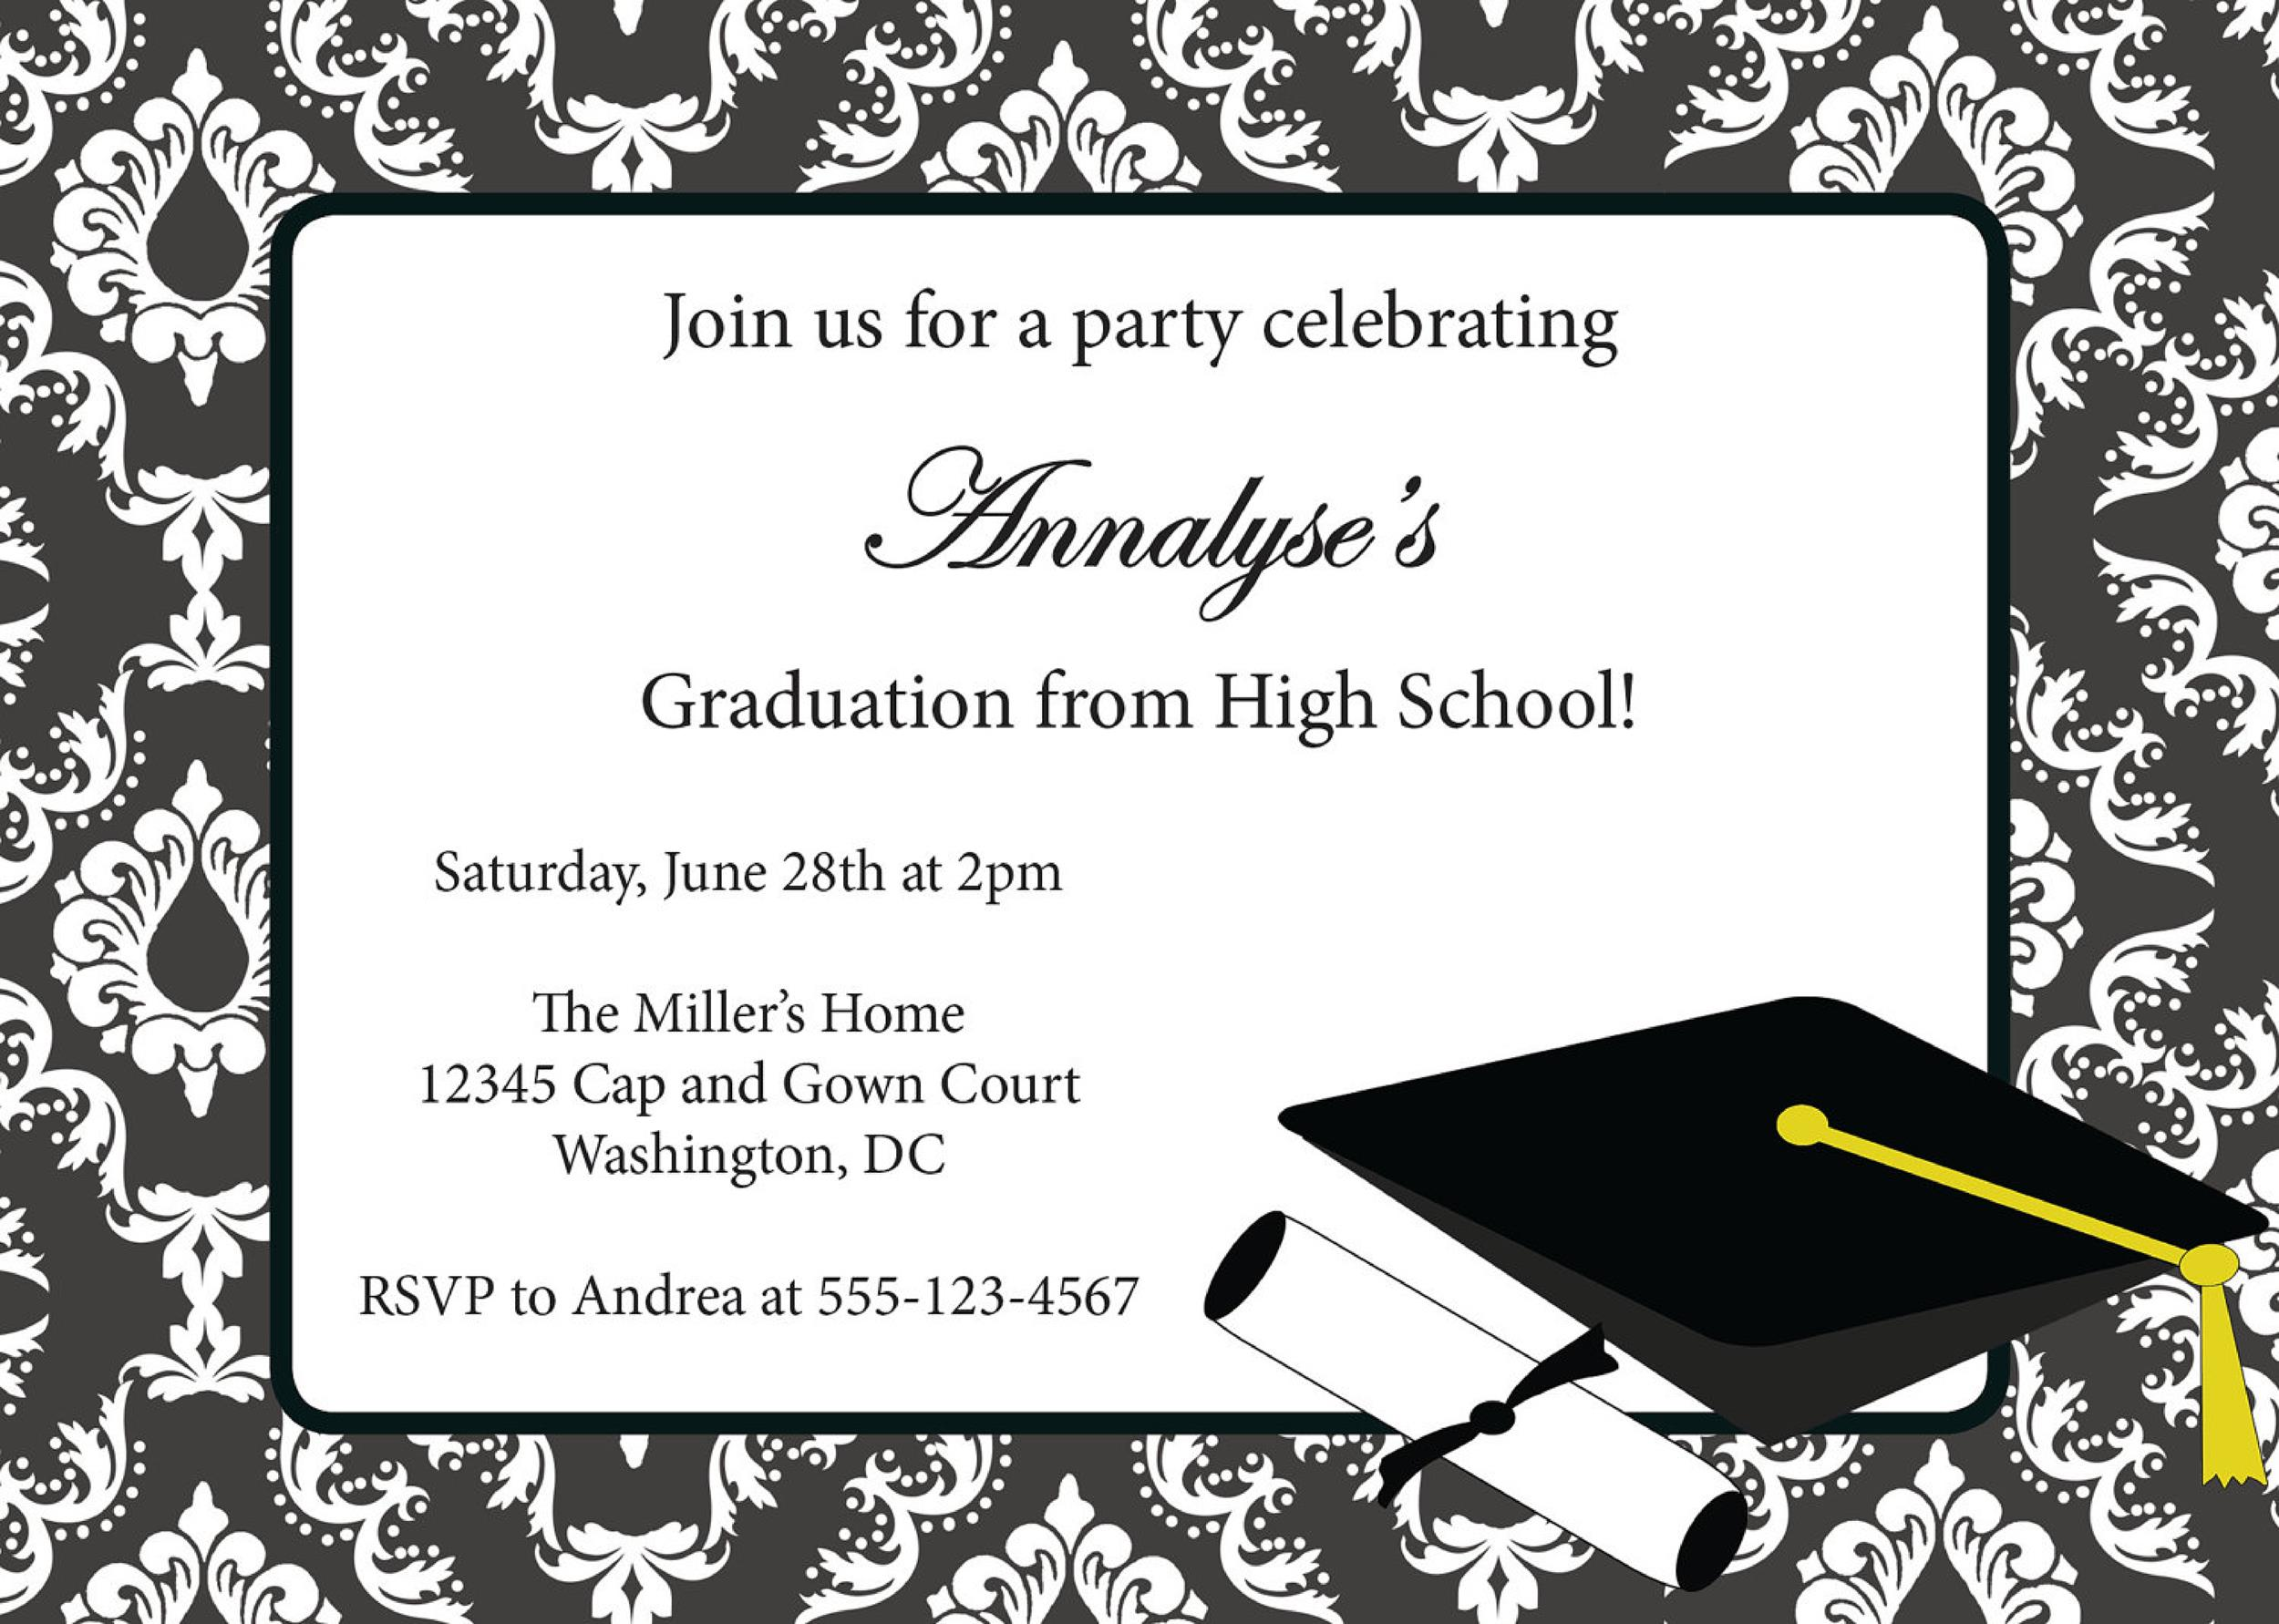 40 free graduation invitation templates template lab printable graduation invitation templates 19 filmwisefo